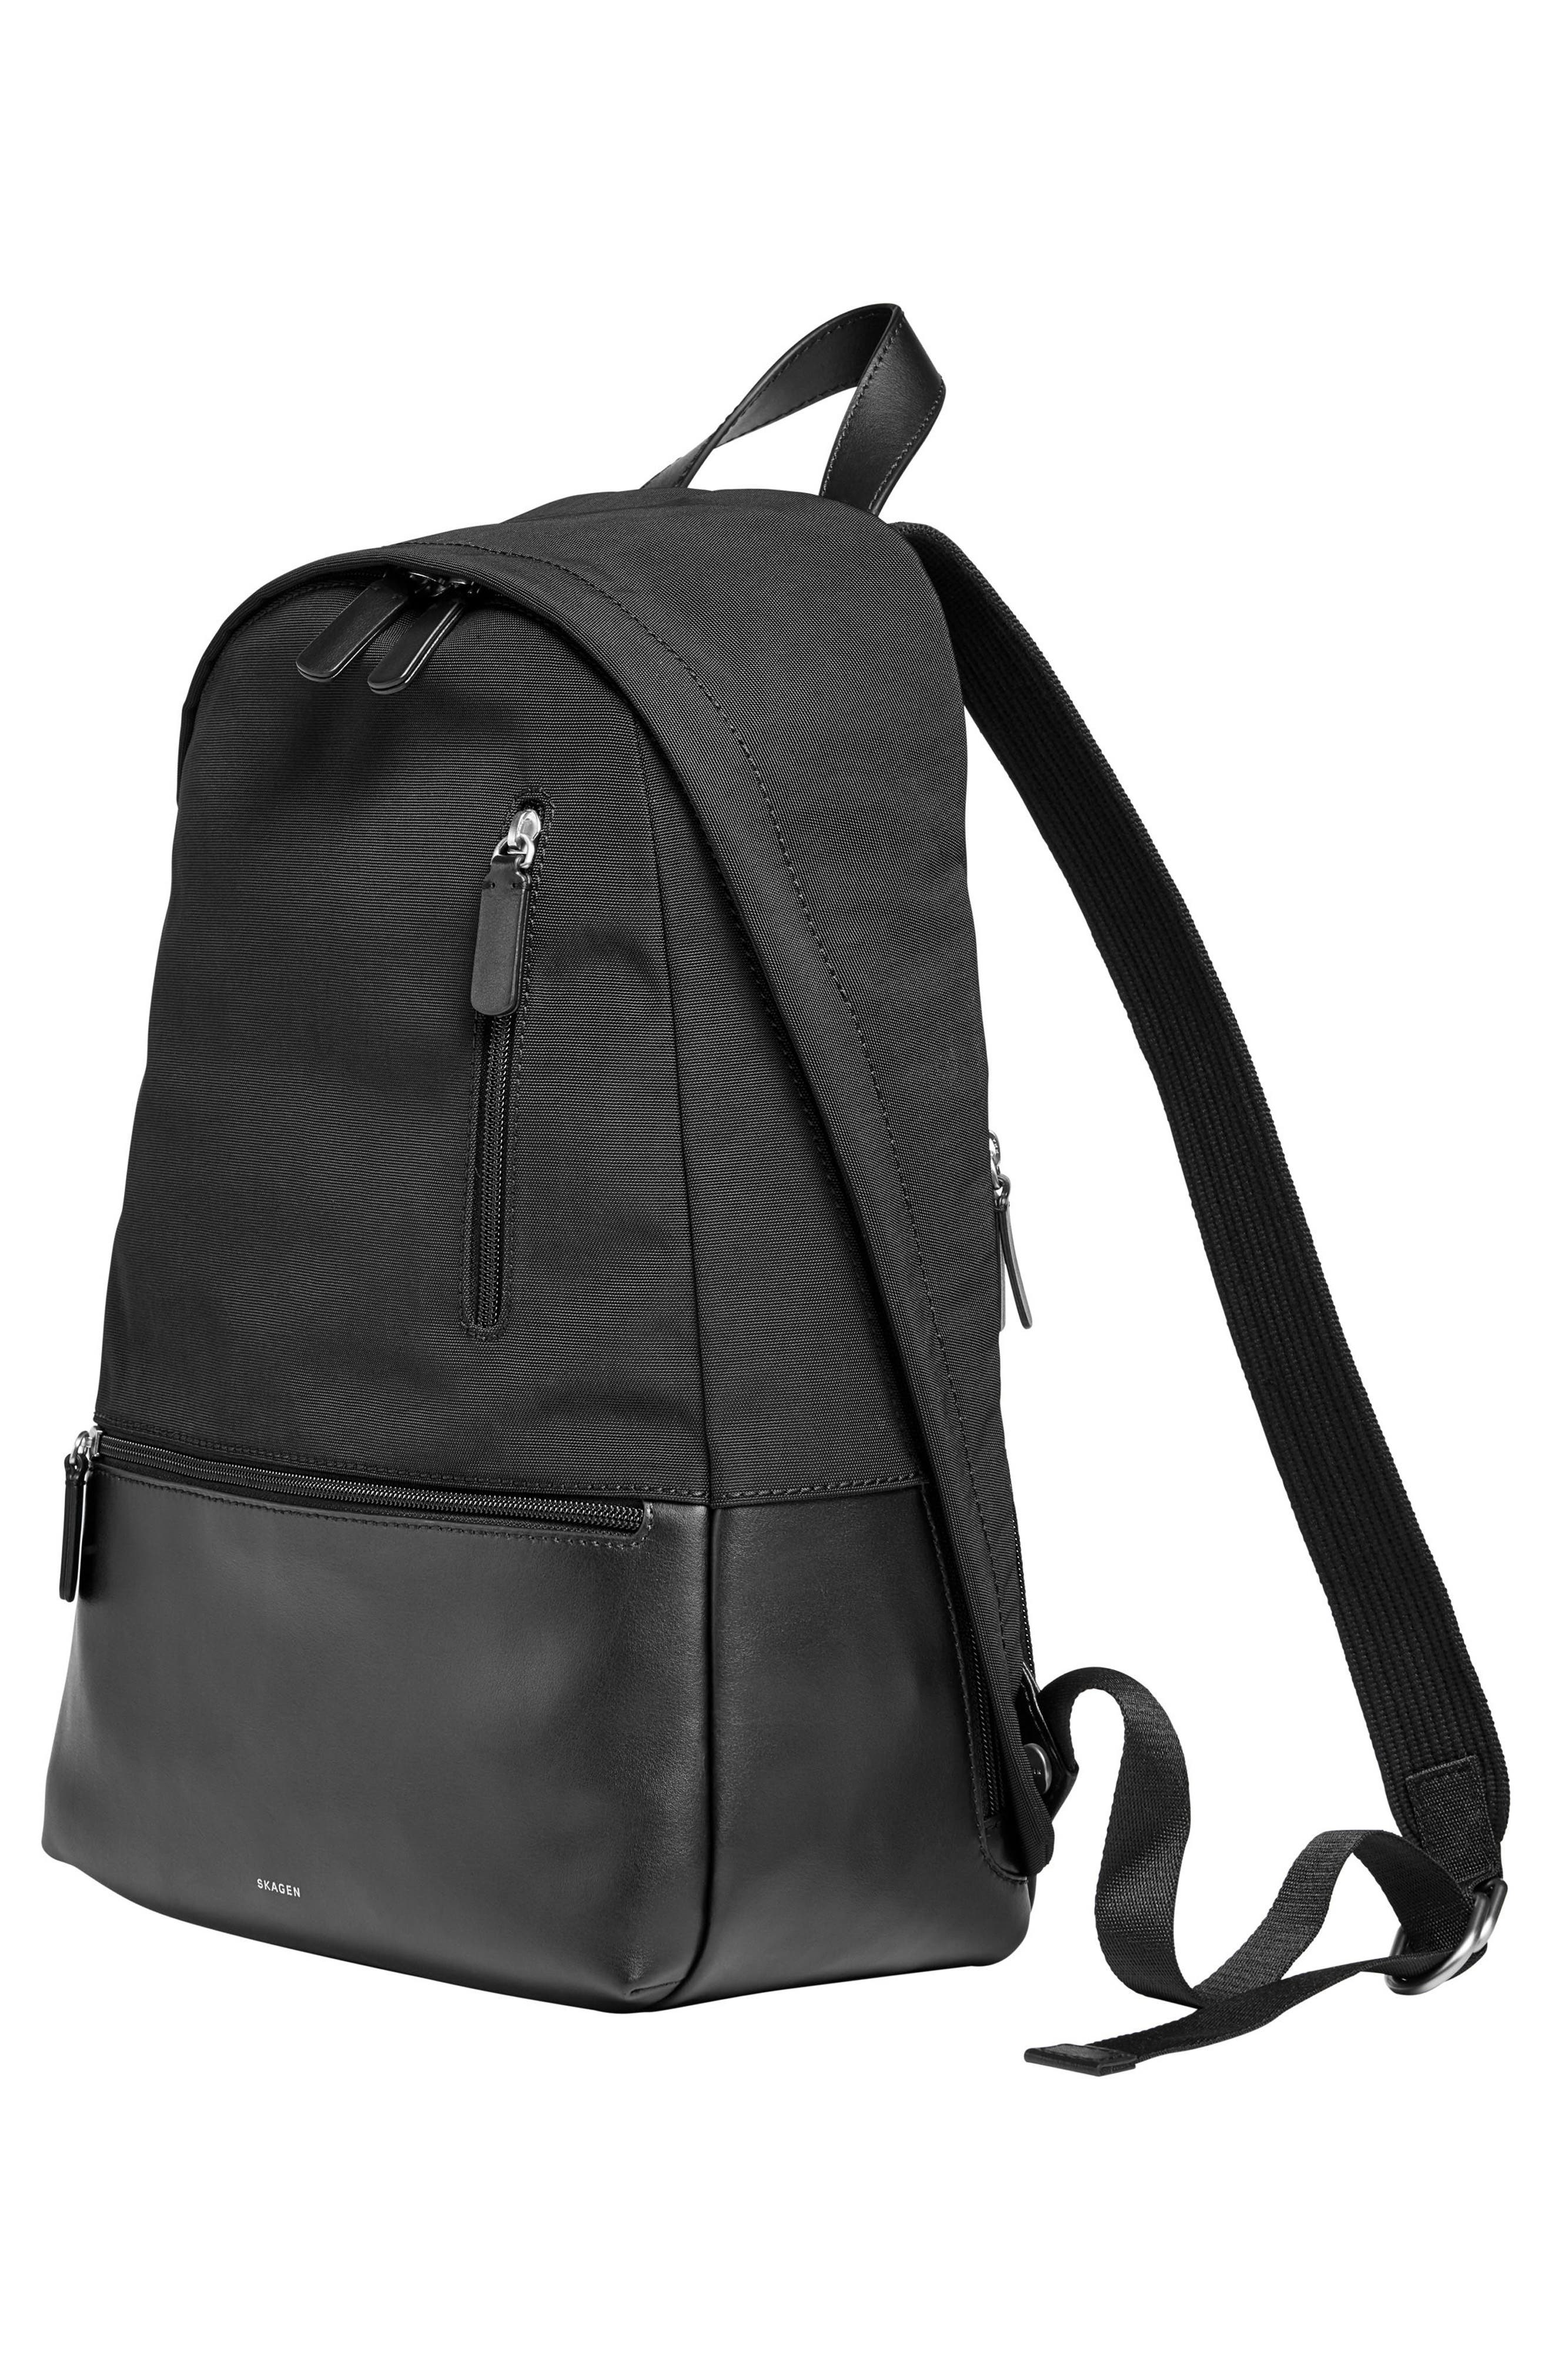 Kroyer Backpack,                             Alternate thumbnail 3, color,                             001